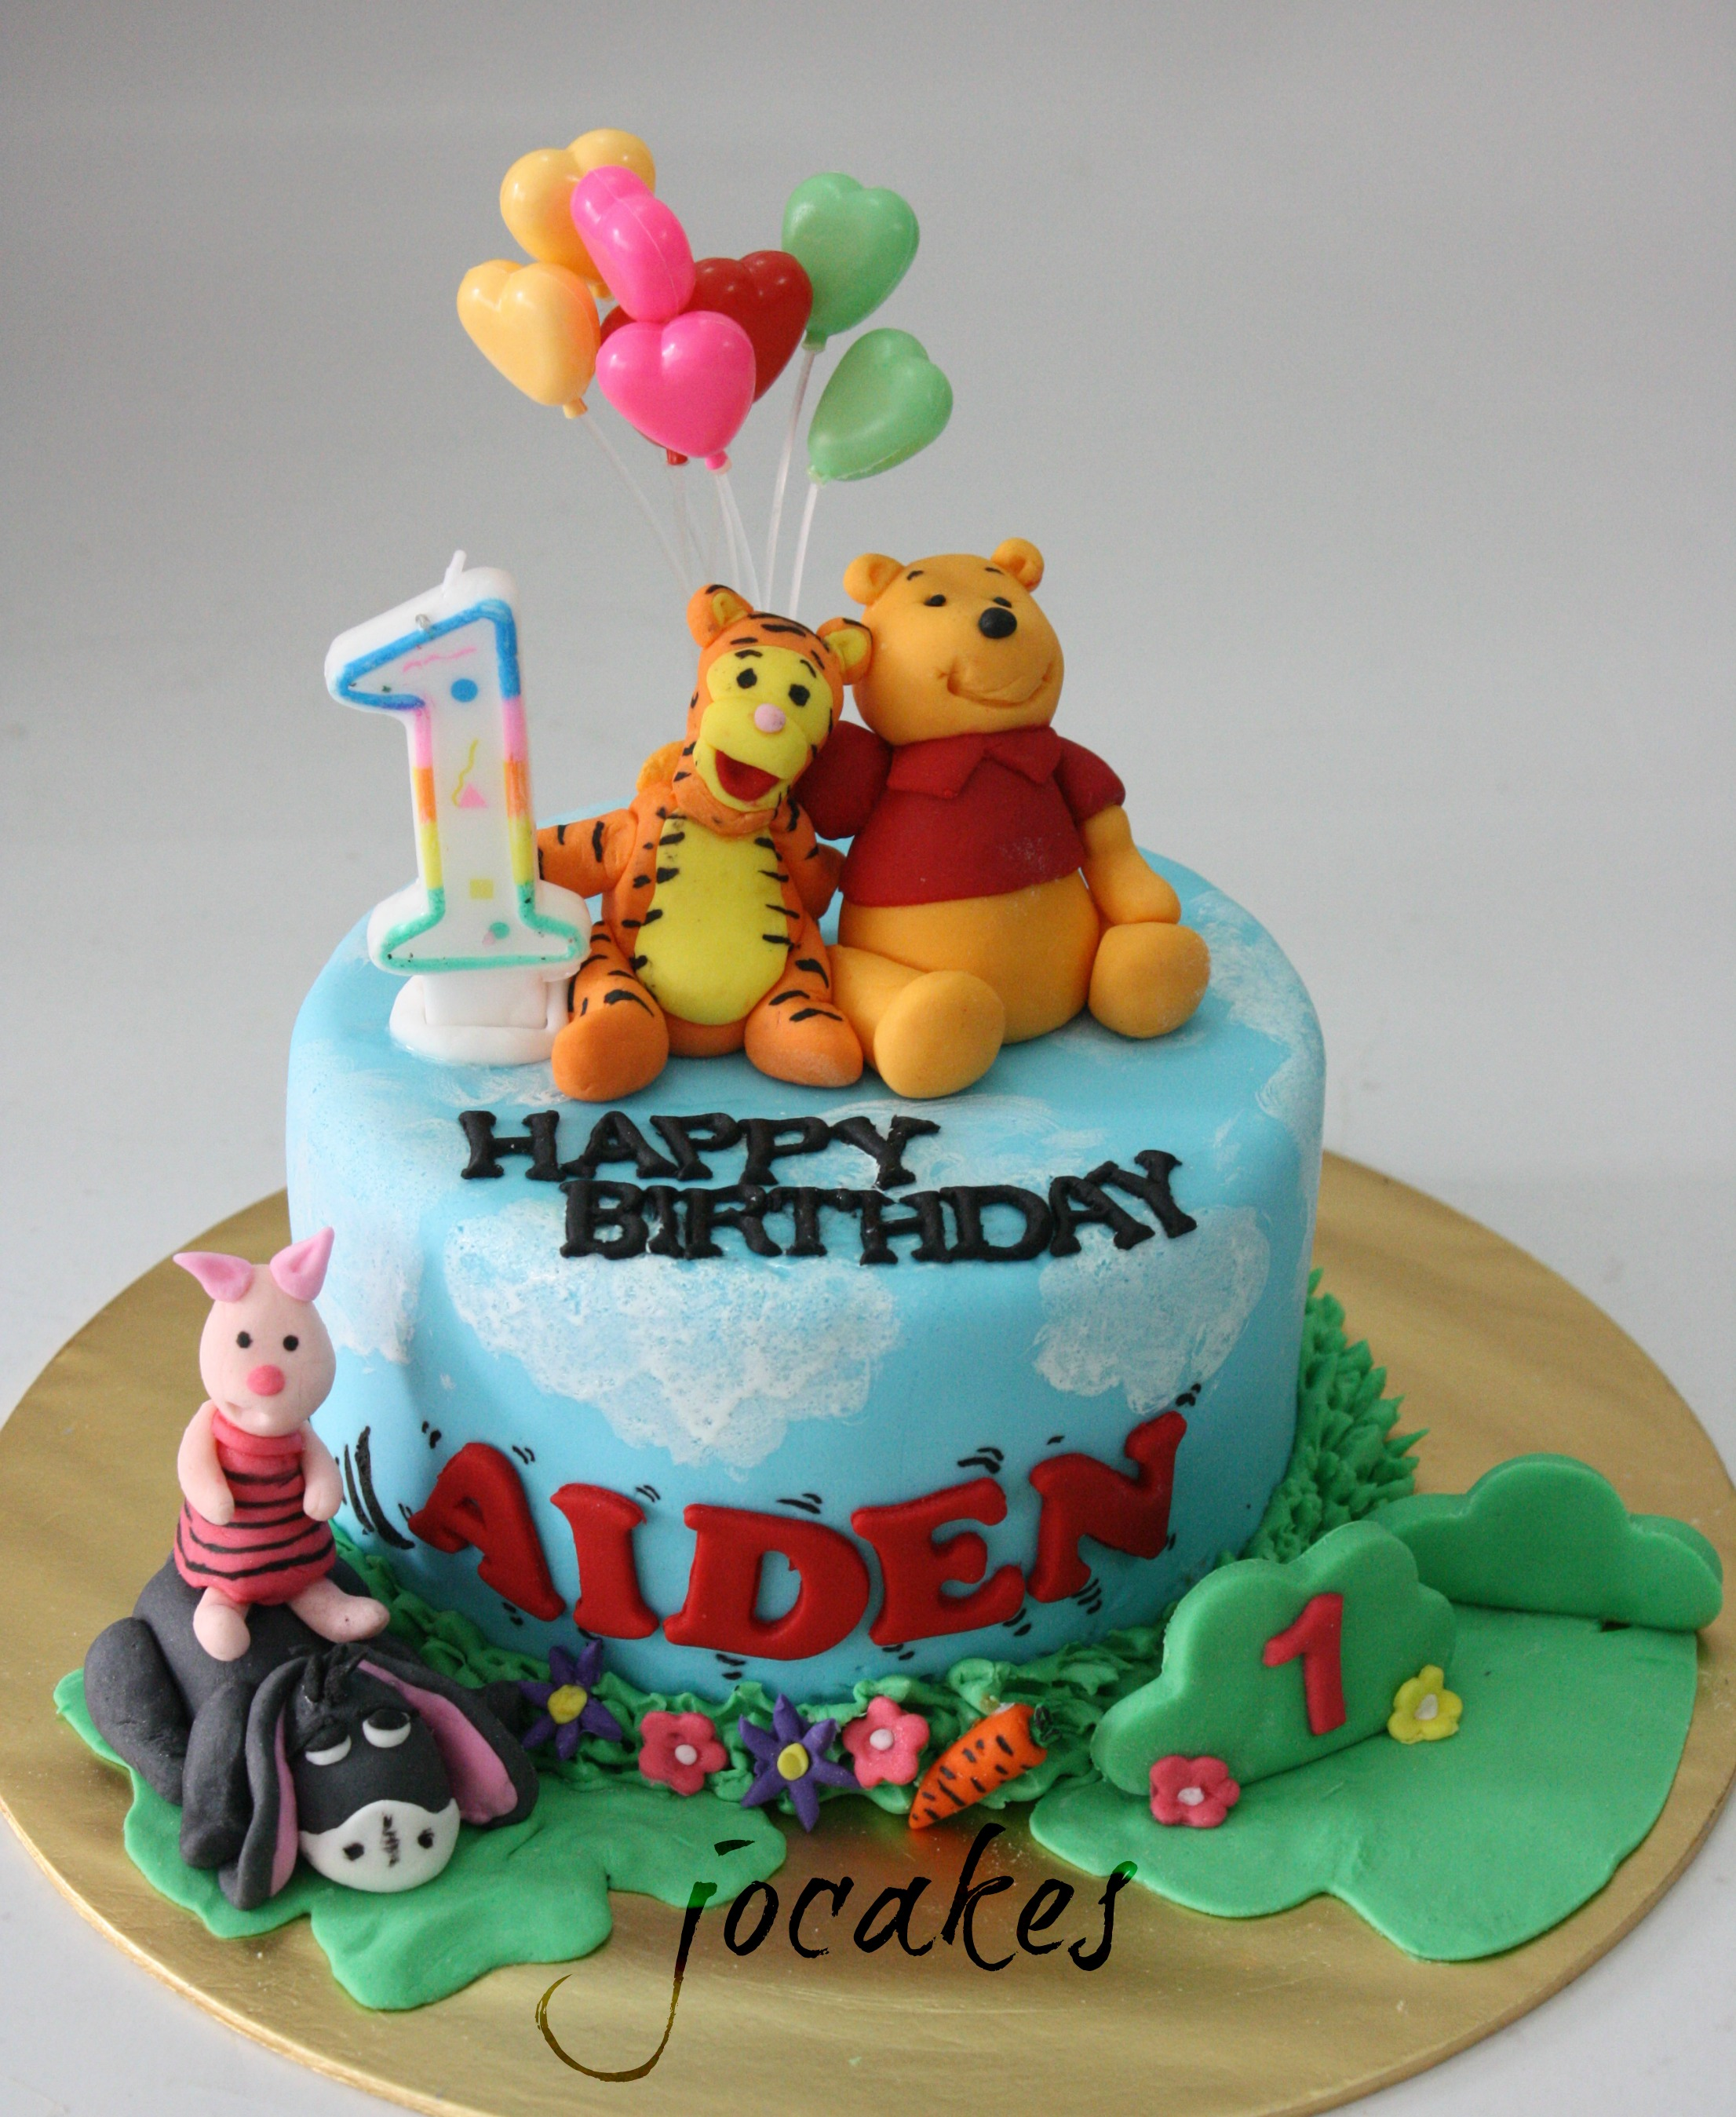 8 Homemade One Year Old Birthday Cakes For Boys Photo